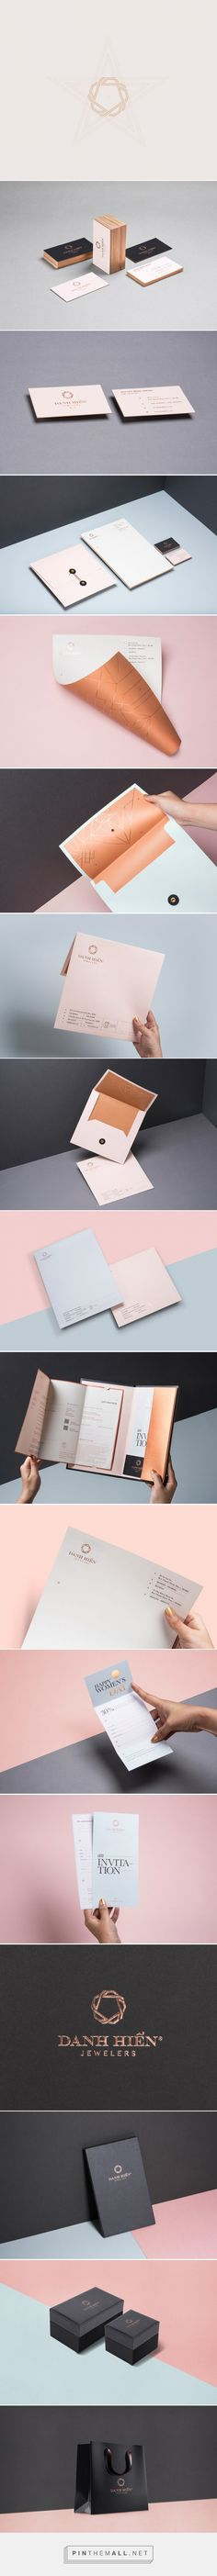 Elegant Branding Design for Danh Hien Jewelers http://inspirationhut.net/inspiration/elegant-branding-design-danh-hien-jewelers/ - created via https://pinthemall.net